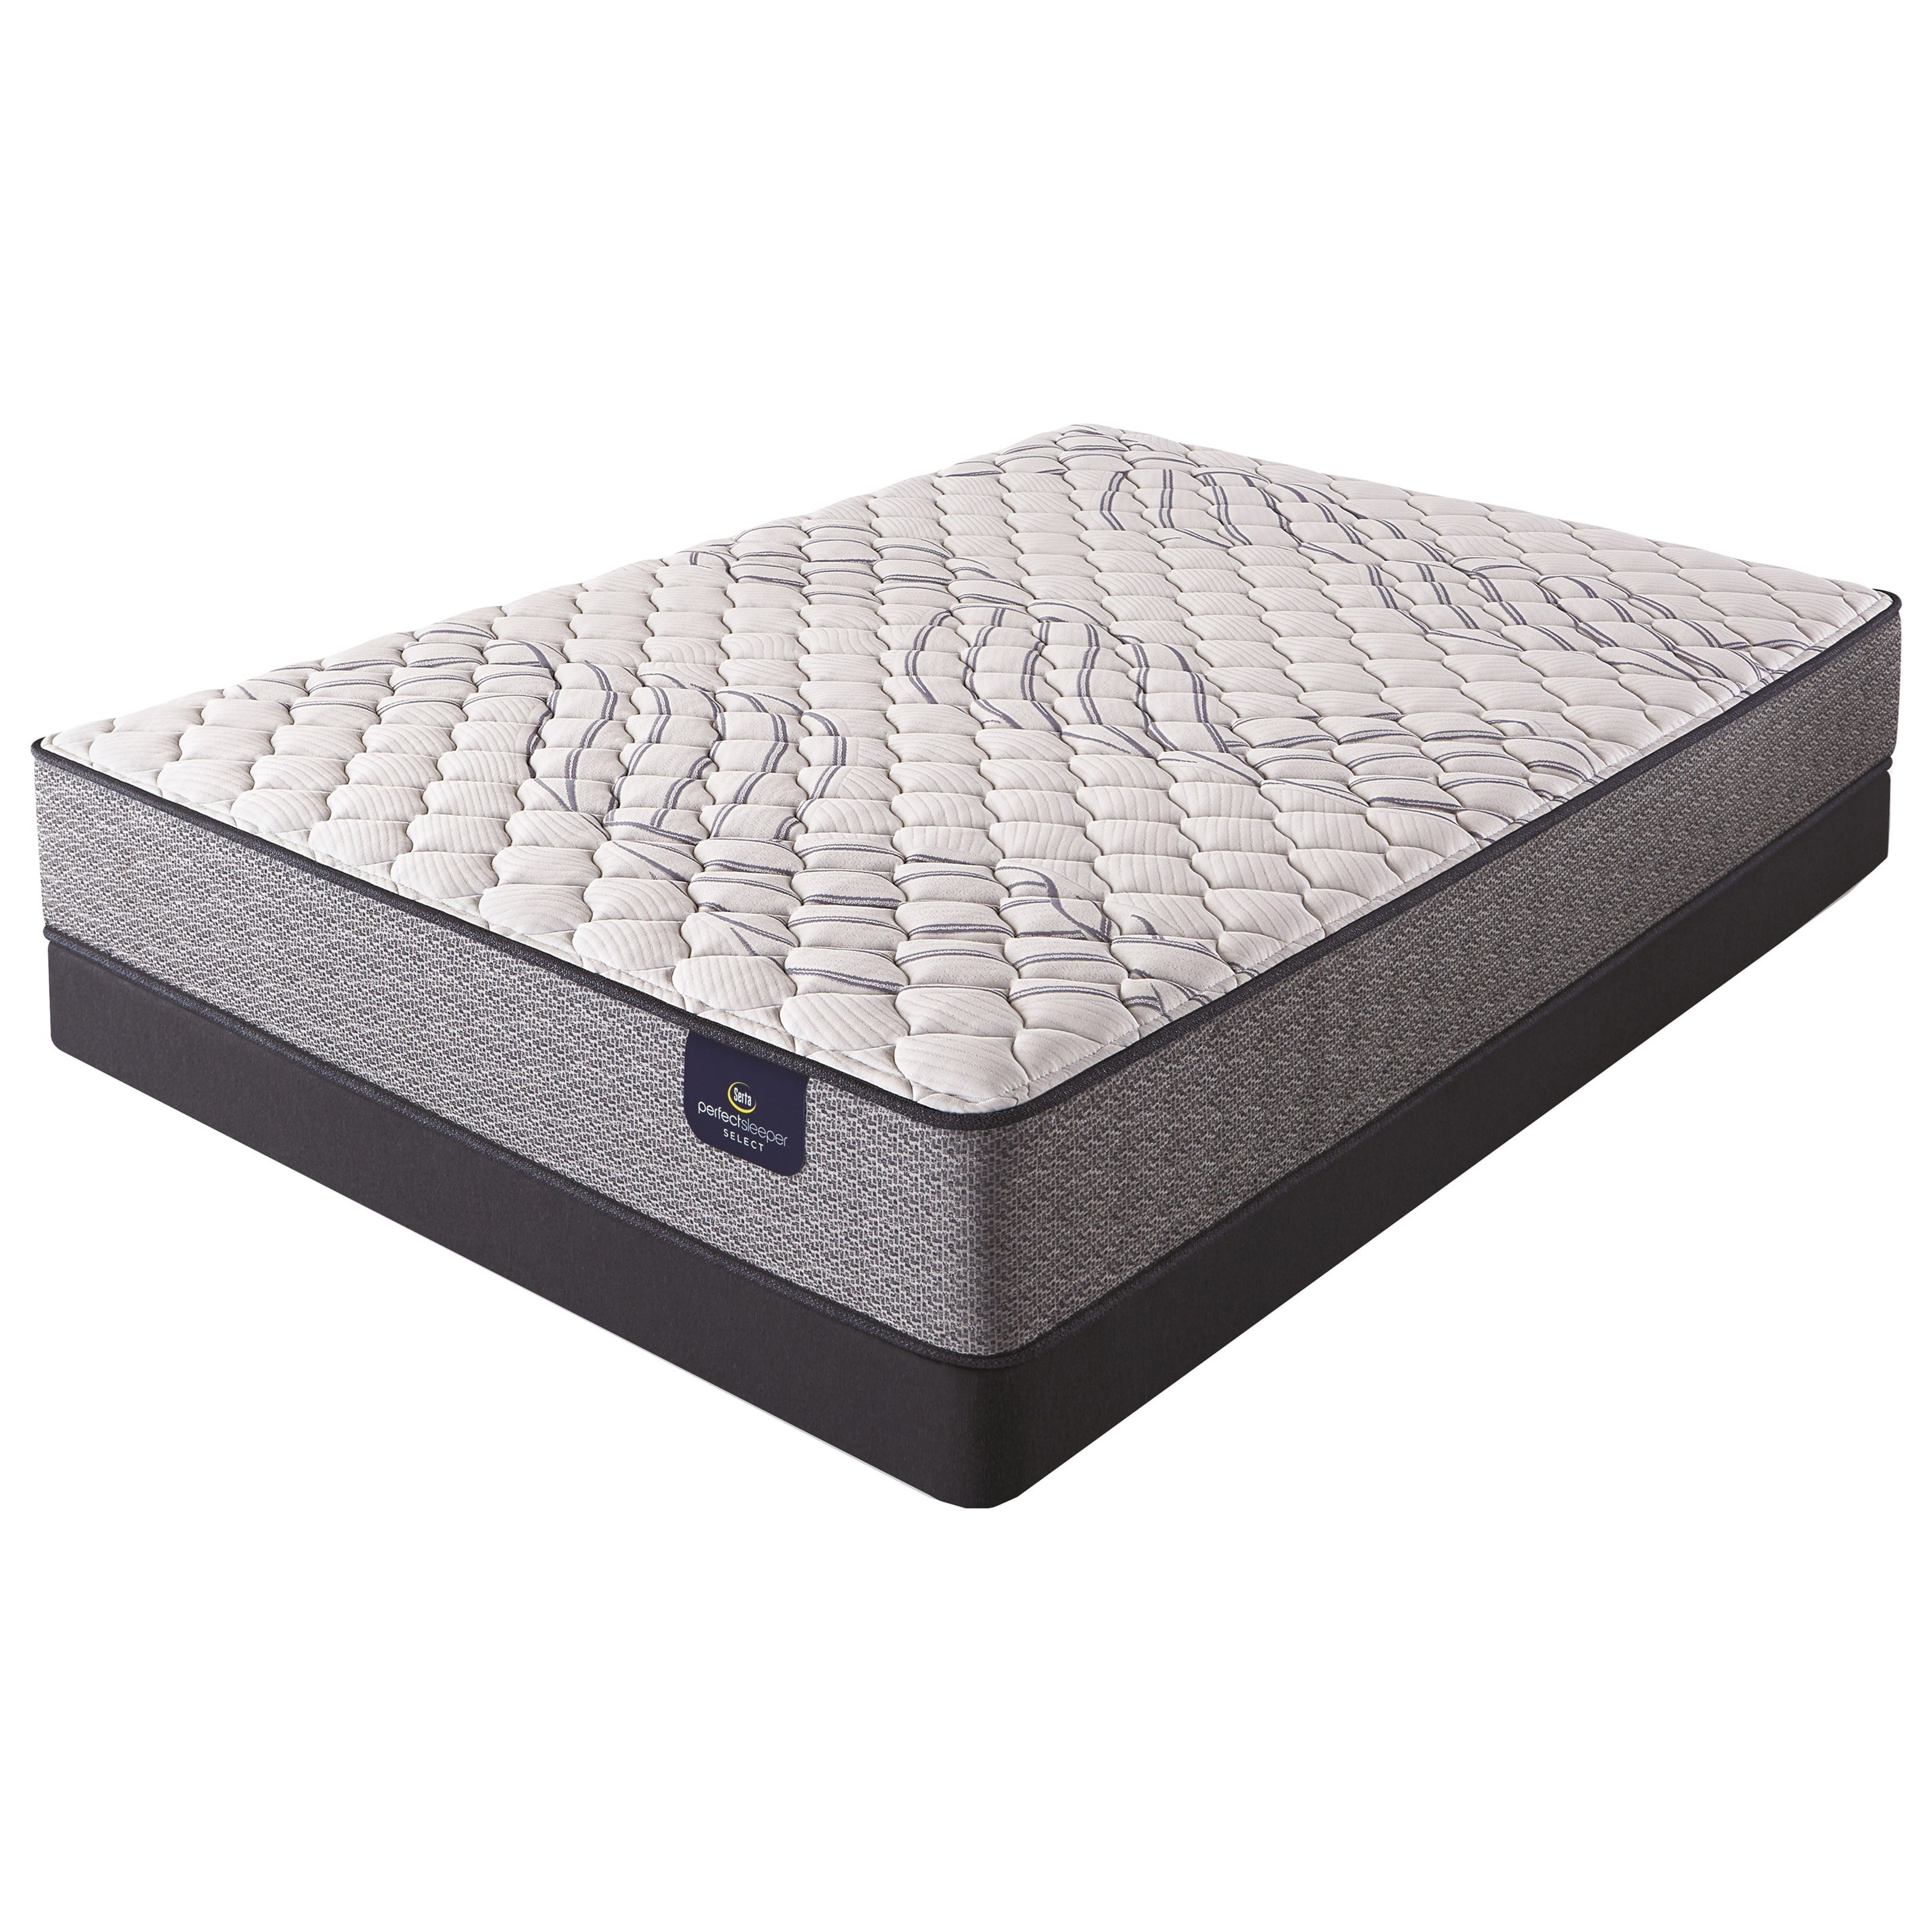 Mayville Firm TT Queen Firm Tight Top Low Profile Set by Serta at Walker's Mattress